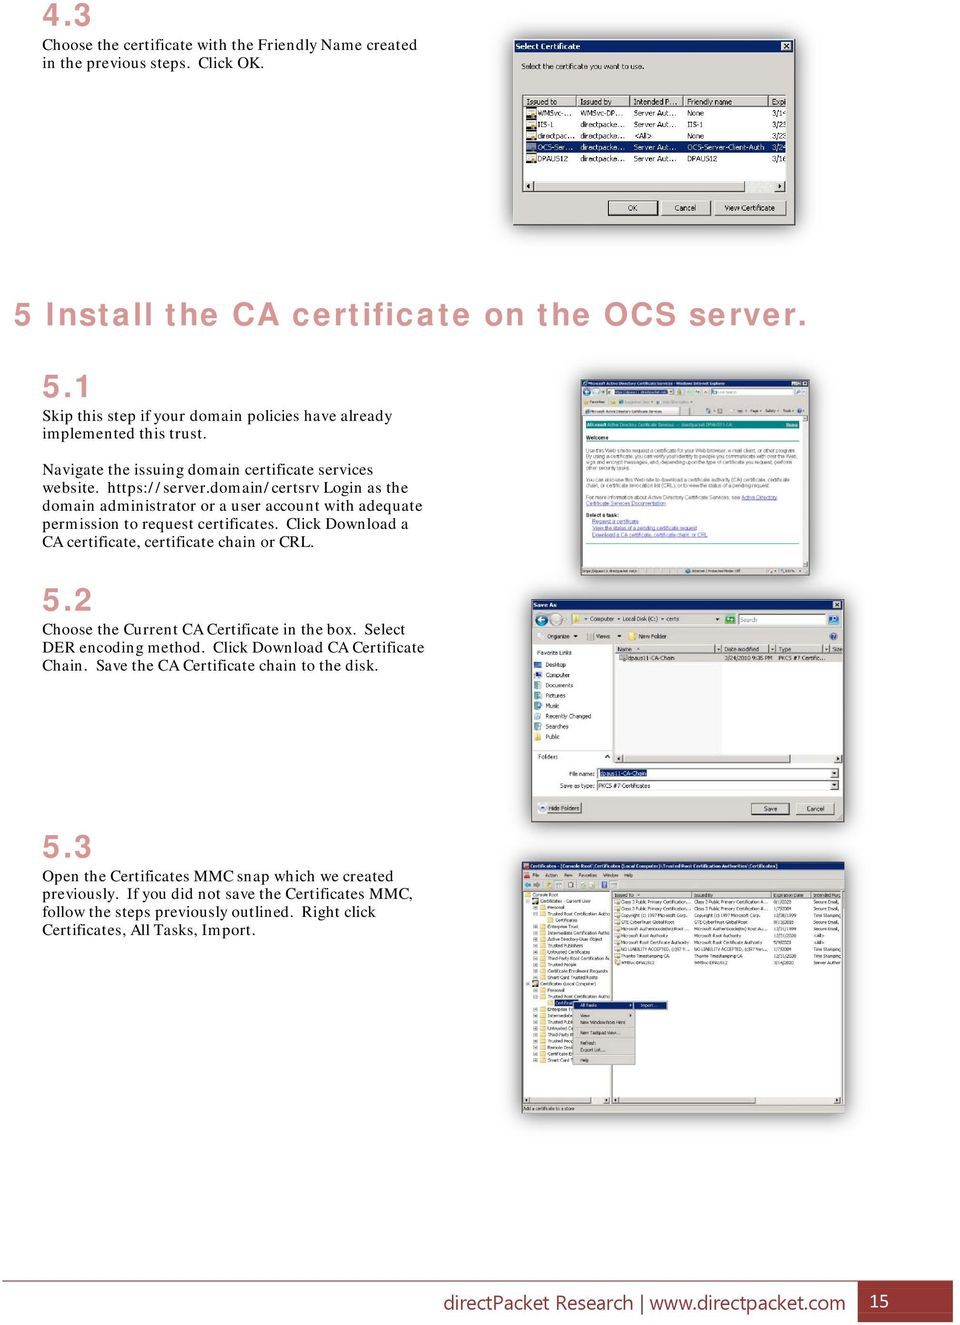 Click Download a CA certificate, certificate chain or CRL. 5.2 Choose the Current CA Certificate in the box. Select DER encoding method. Click Download CA Certificate Chain.